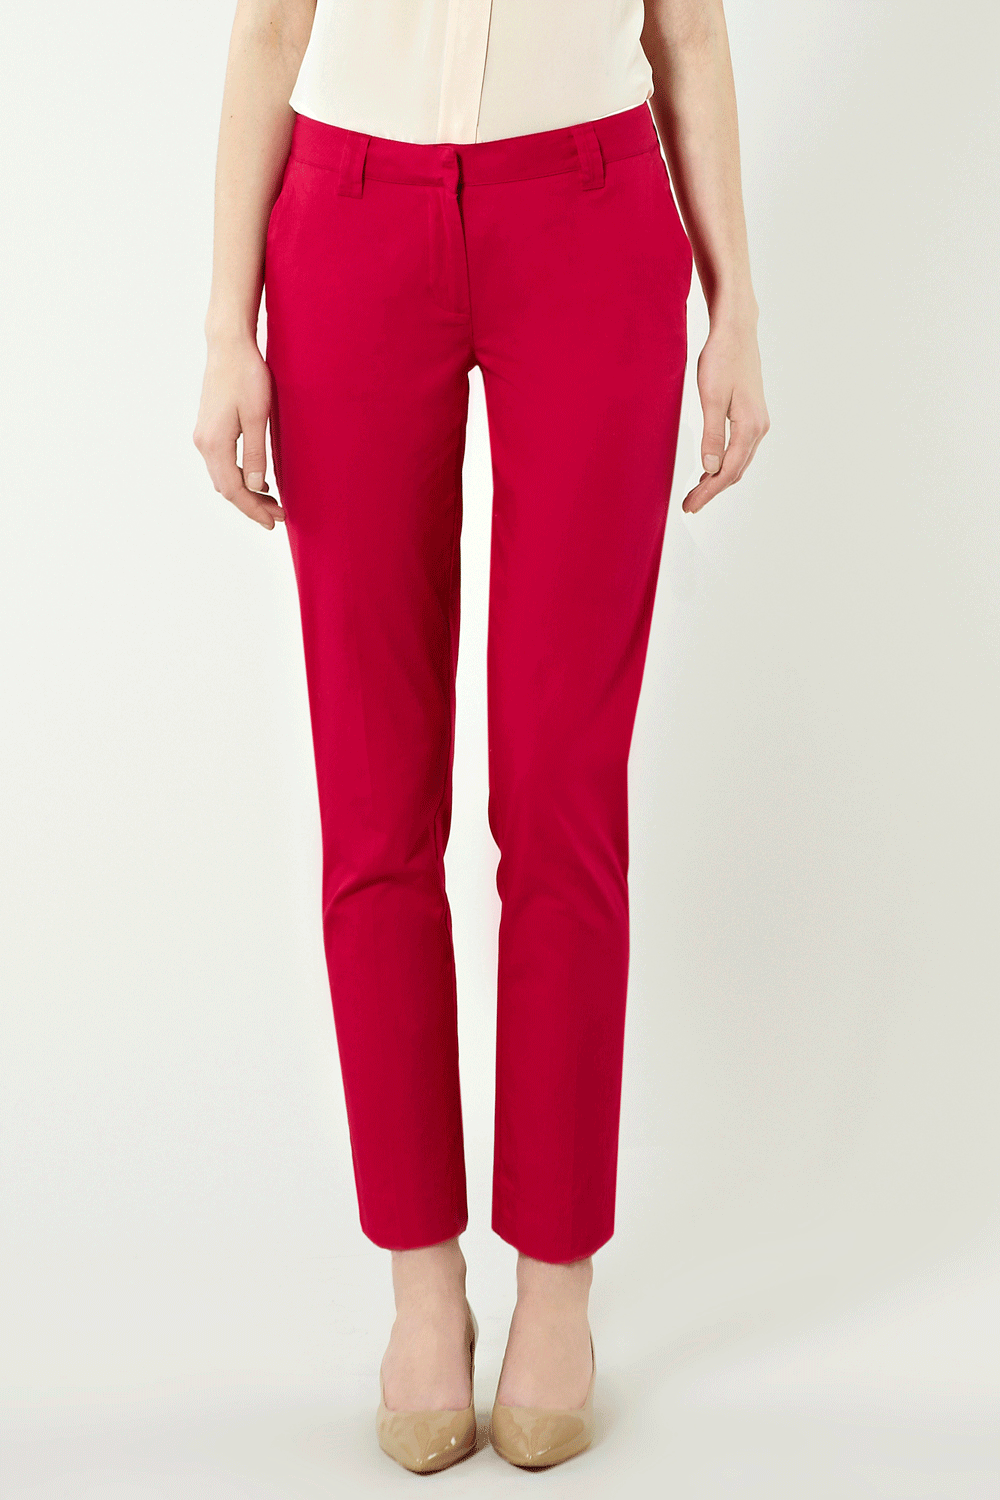 Stripe Side Trousers - pocket detail: small back pockets, pockets at the sides; waist: mid/regular rise; predominant colour: true red; occasions: evening, work; length: ankle length; fibres: cotton - 100%; trends: brights; fit: slim leg; style: standard